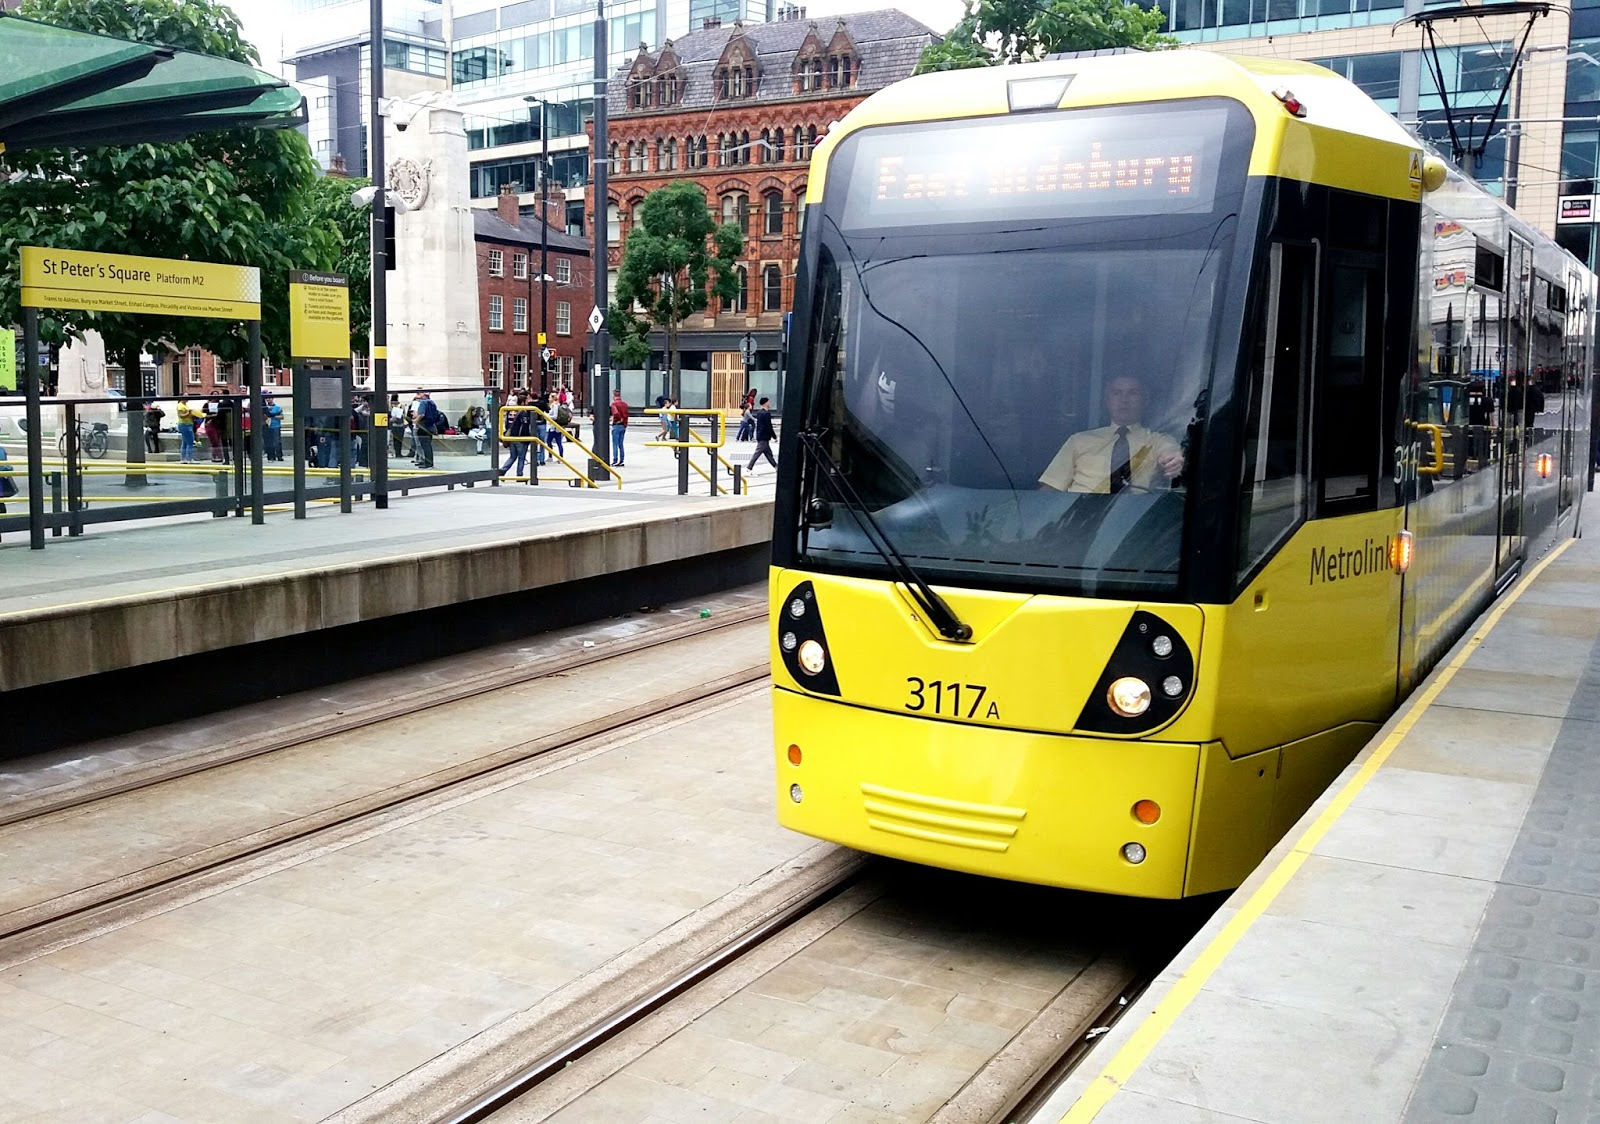 Manchester Metrolink Tram in St Peter's Square